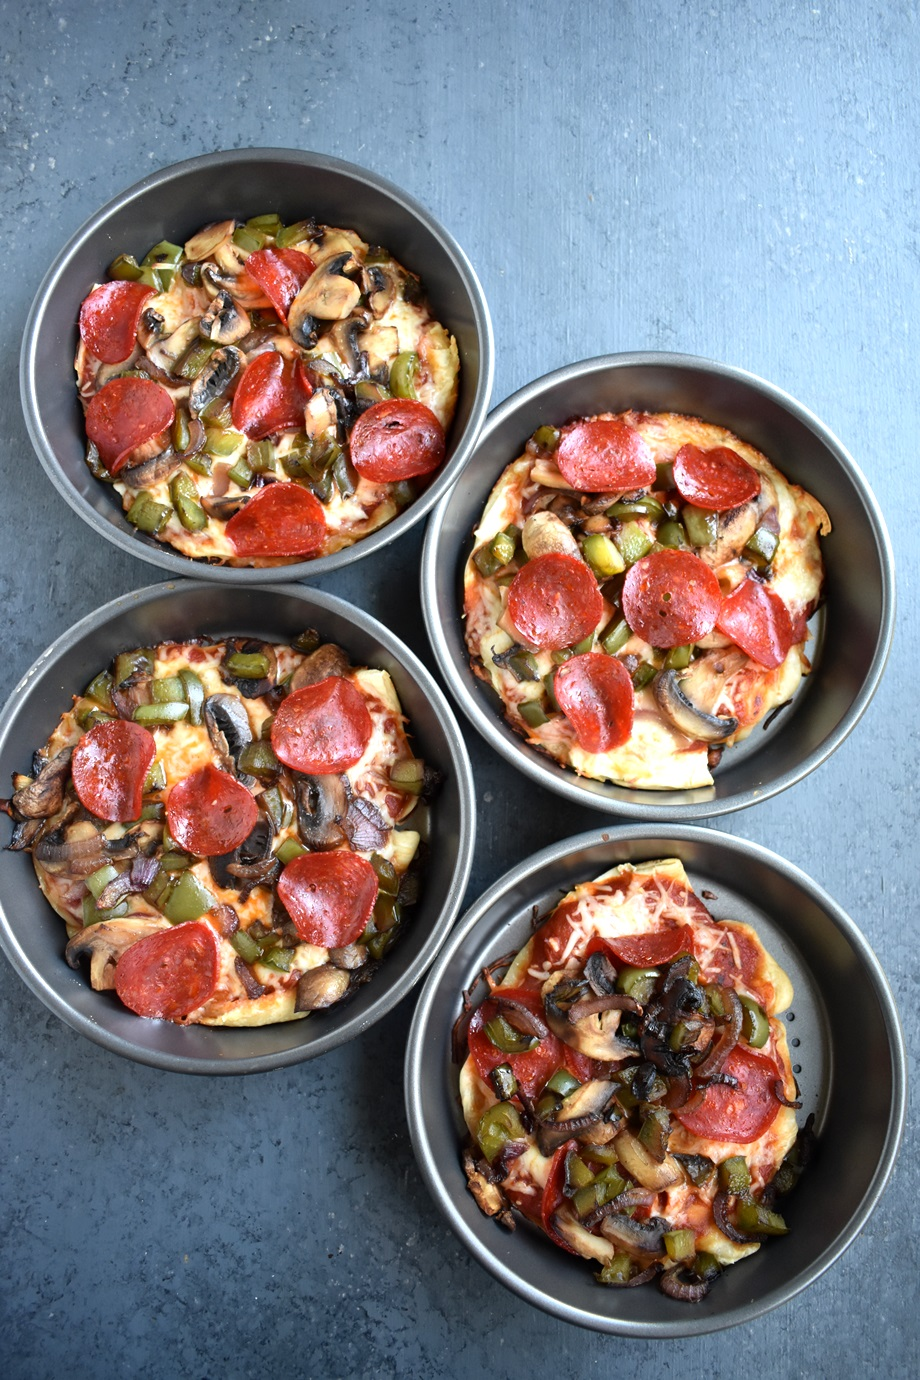 4 mini deep dish pizzas